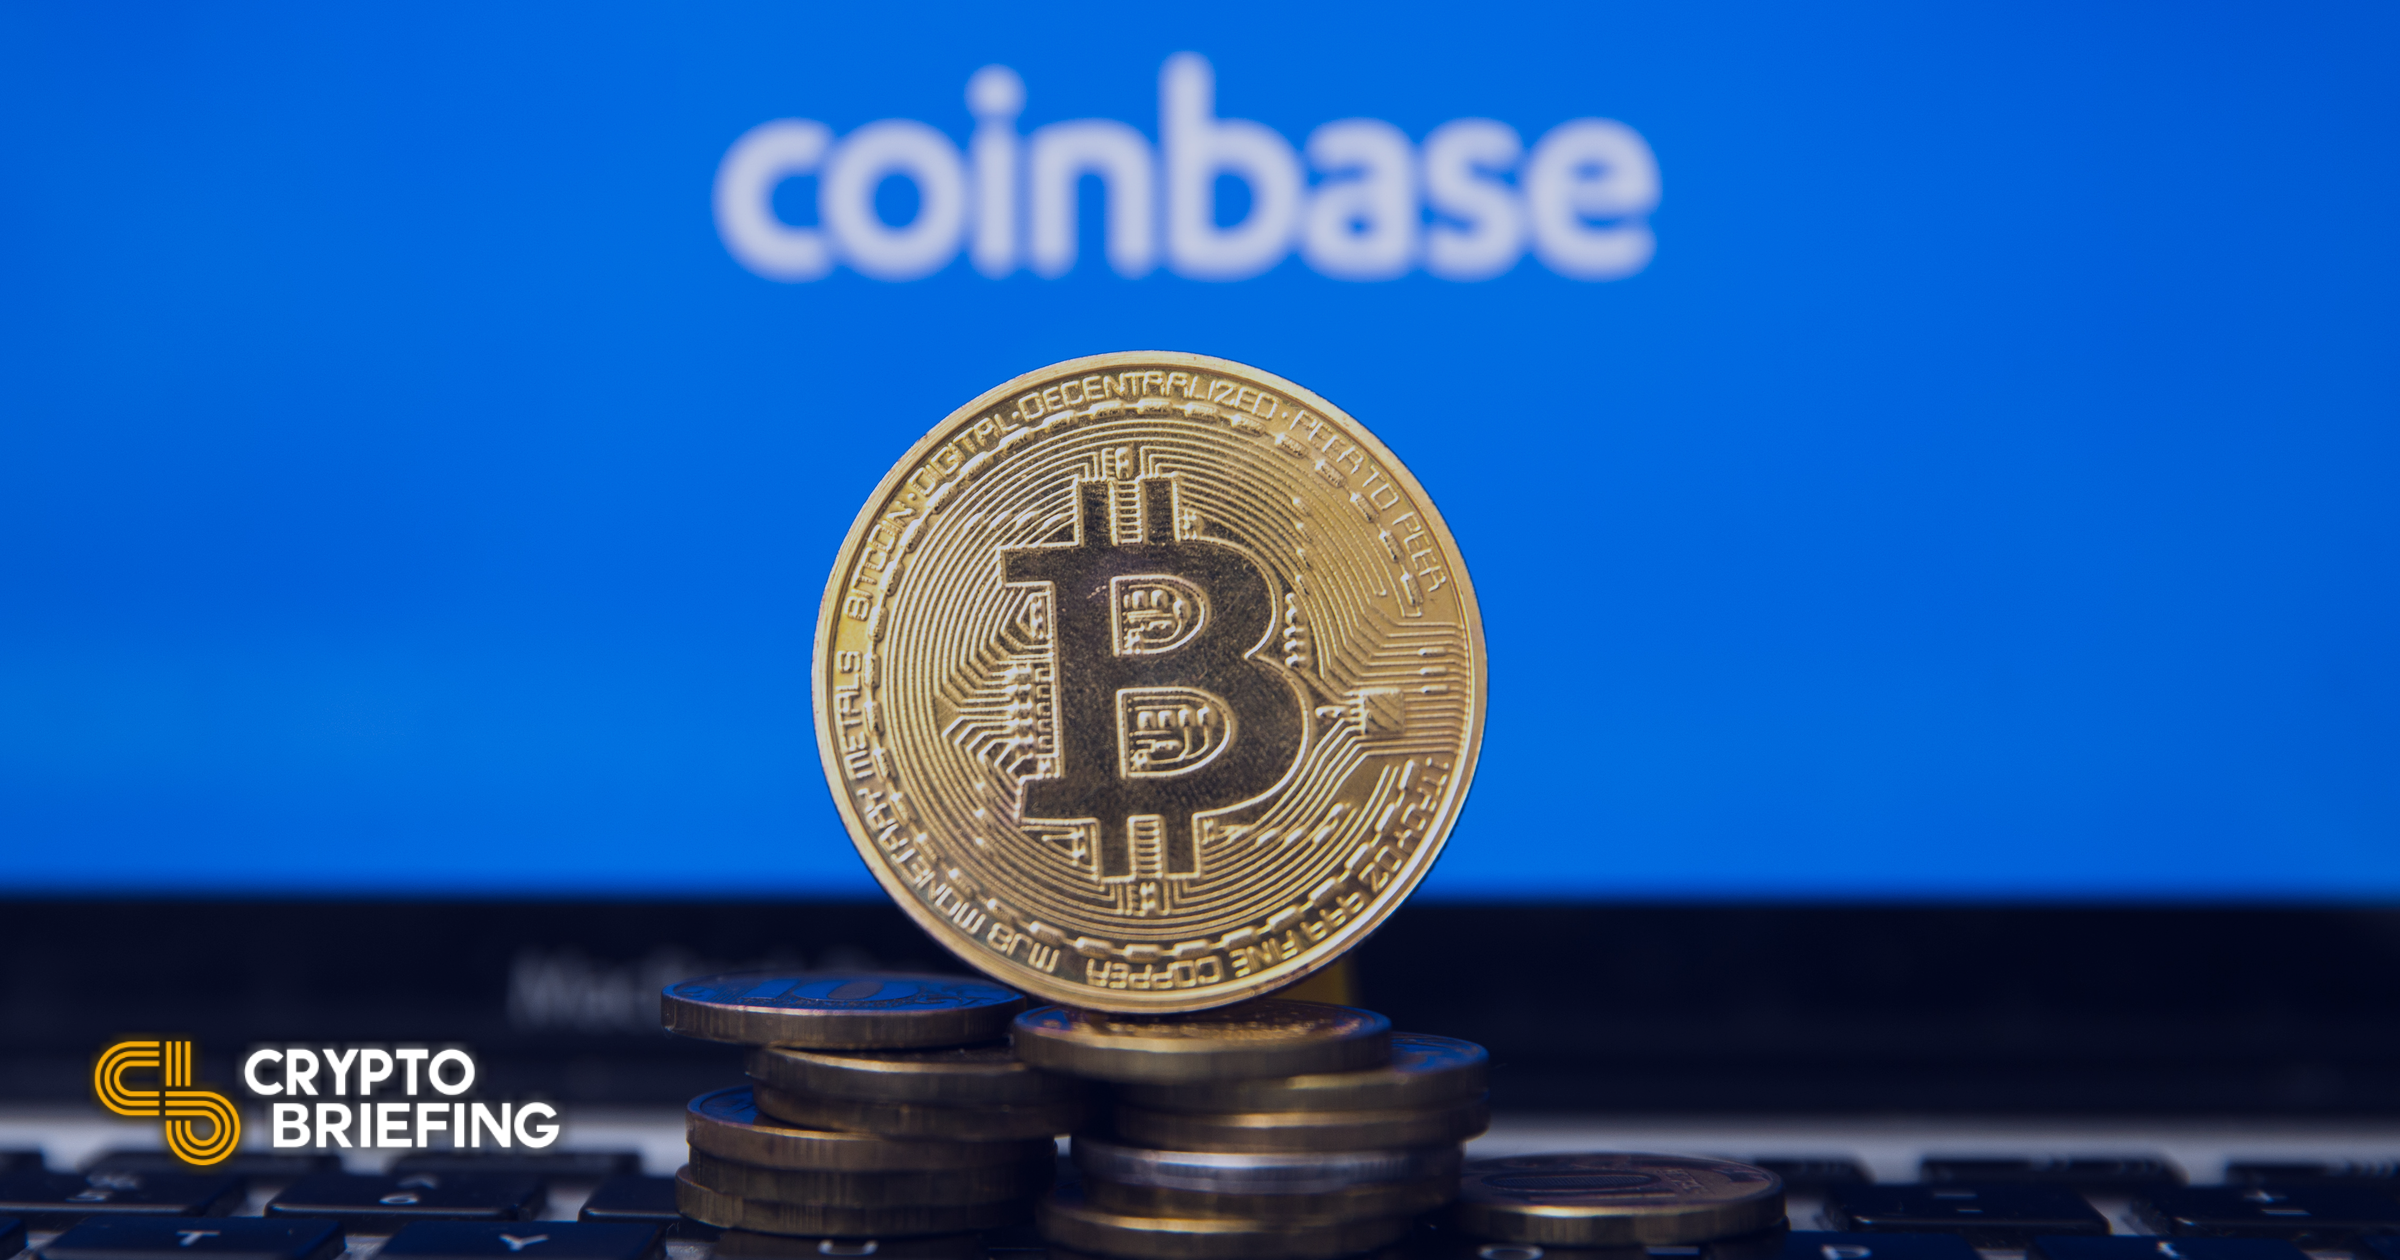 Coinbase Hits $103B Valuation in Landmark Public Listing   Crypto Briefing